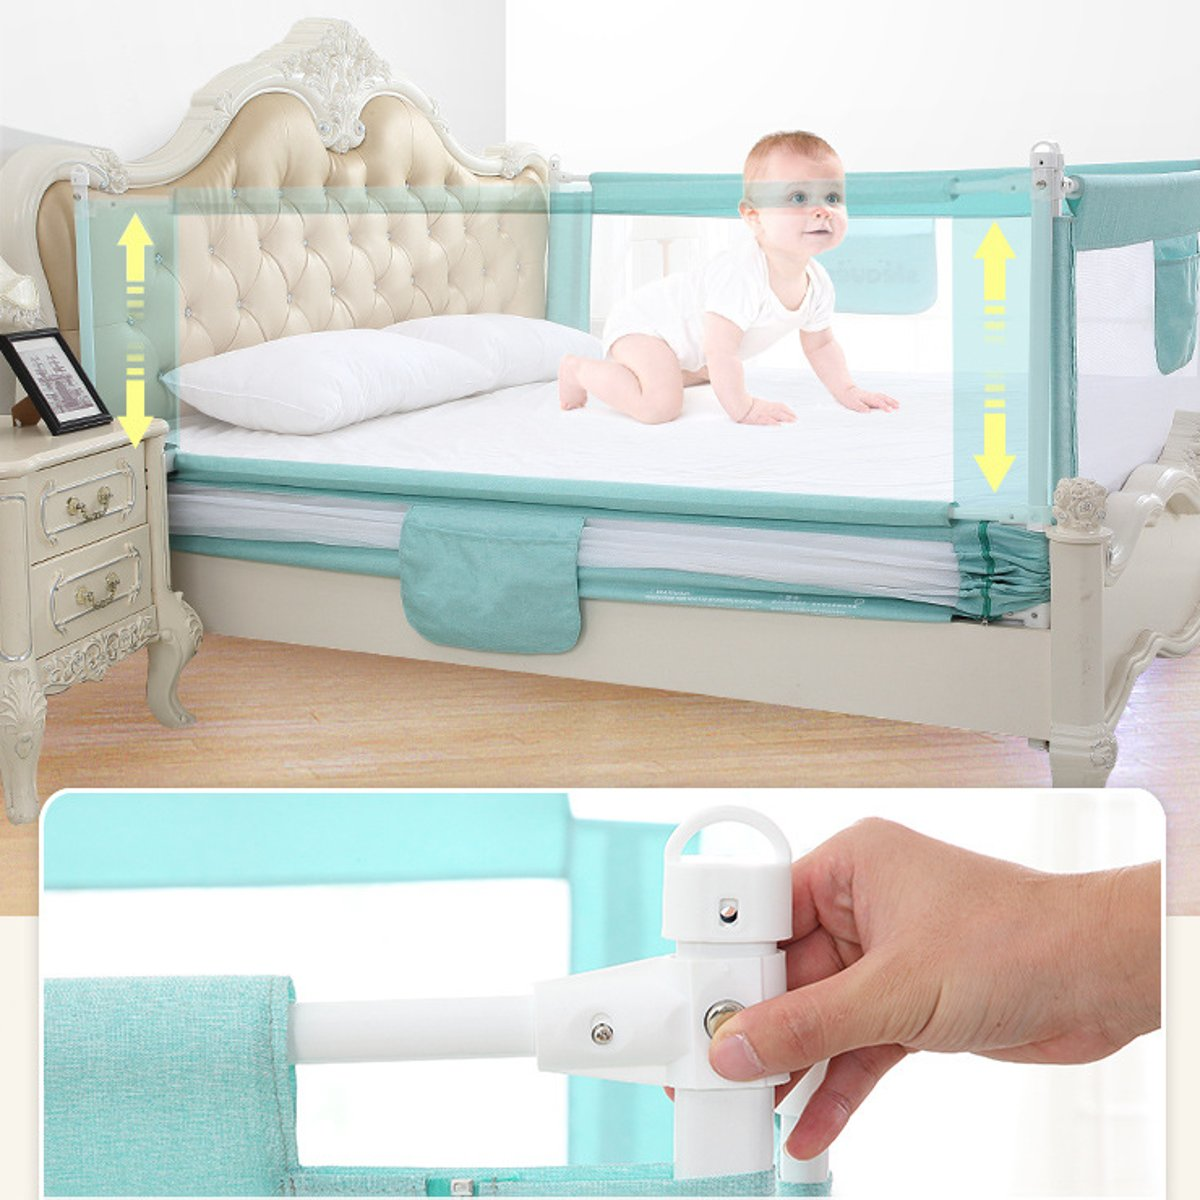 2M Baby Bed Fence for Child Safety used as Baby Gate from Falling Accidentally while Sleeping or Playing 18